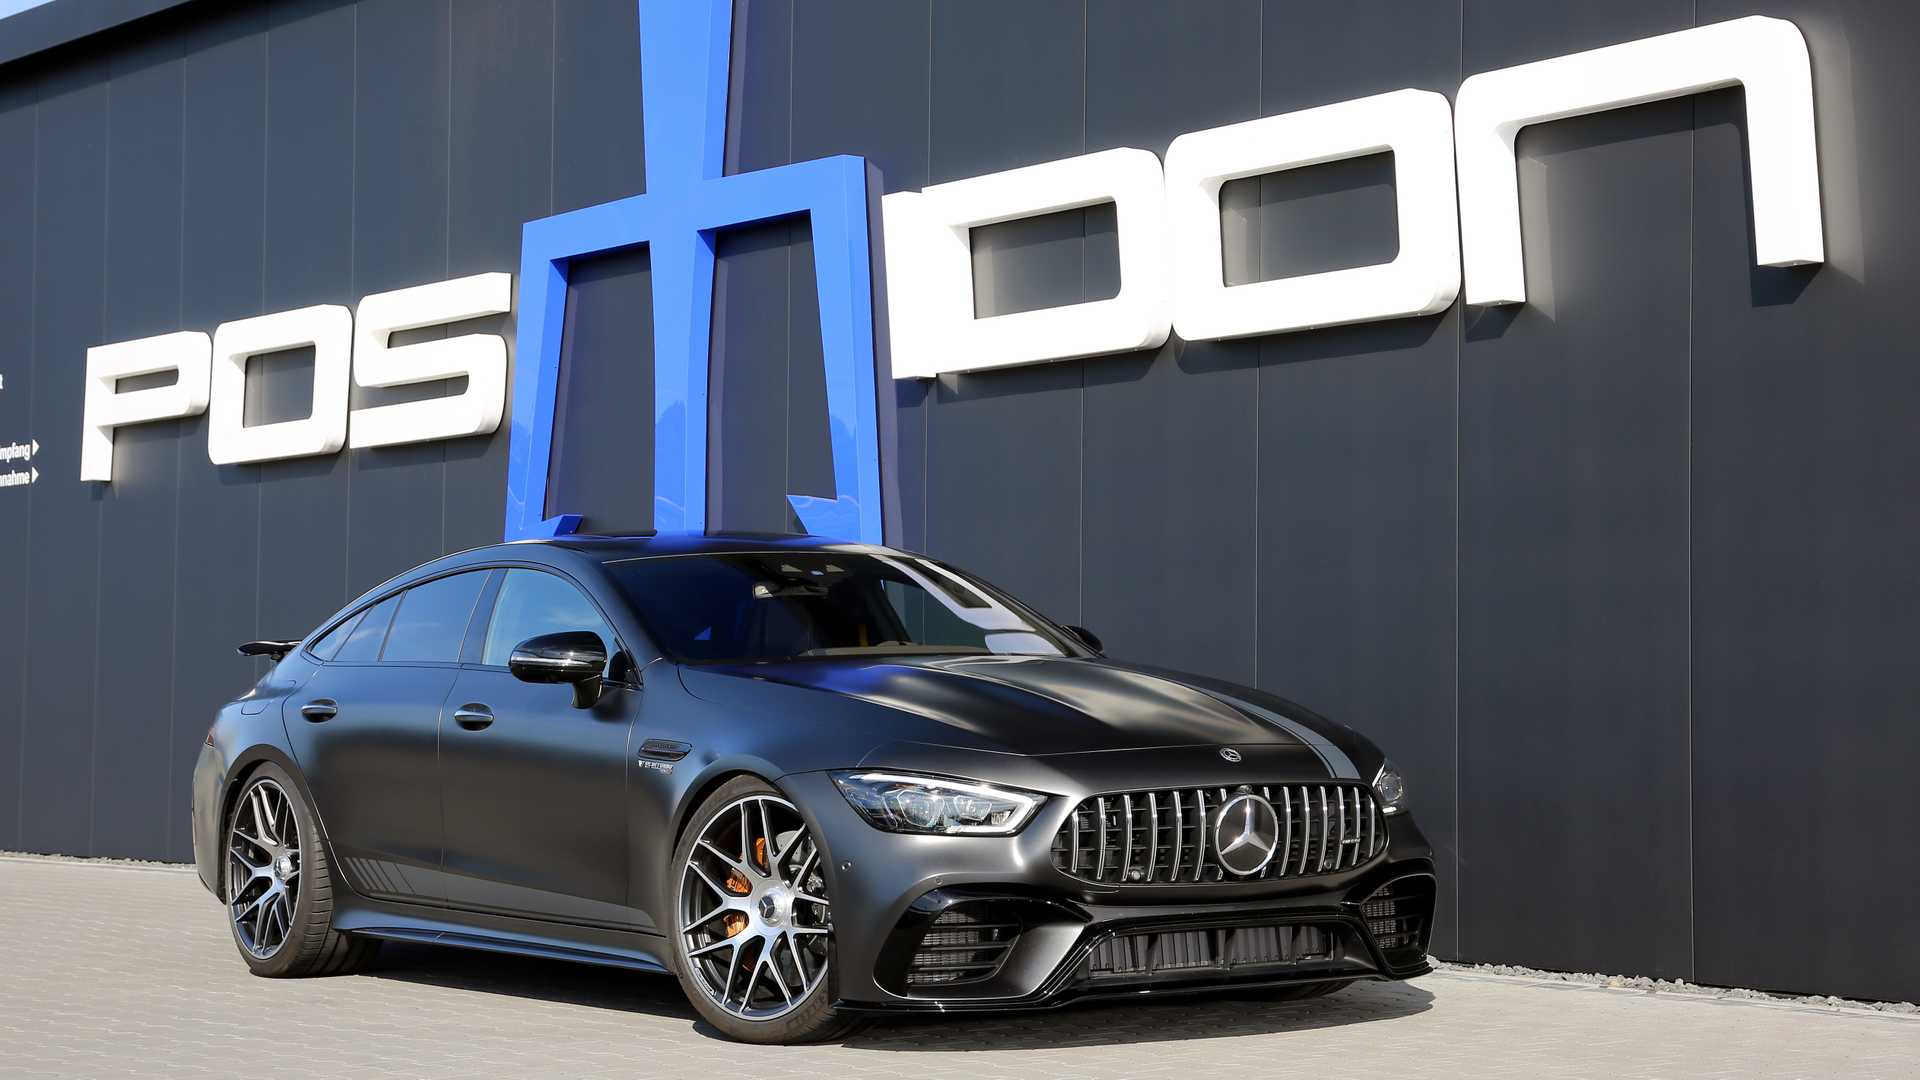 posaidon mercedes amg gt 63 s 4 door coup pushes 880 hp. Black Bedroom Furniture Sets. Home Design Ideas